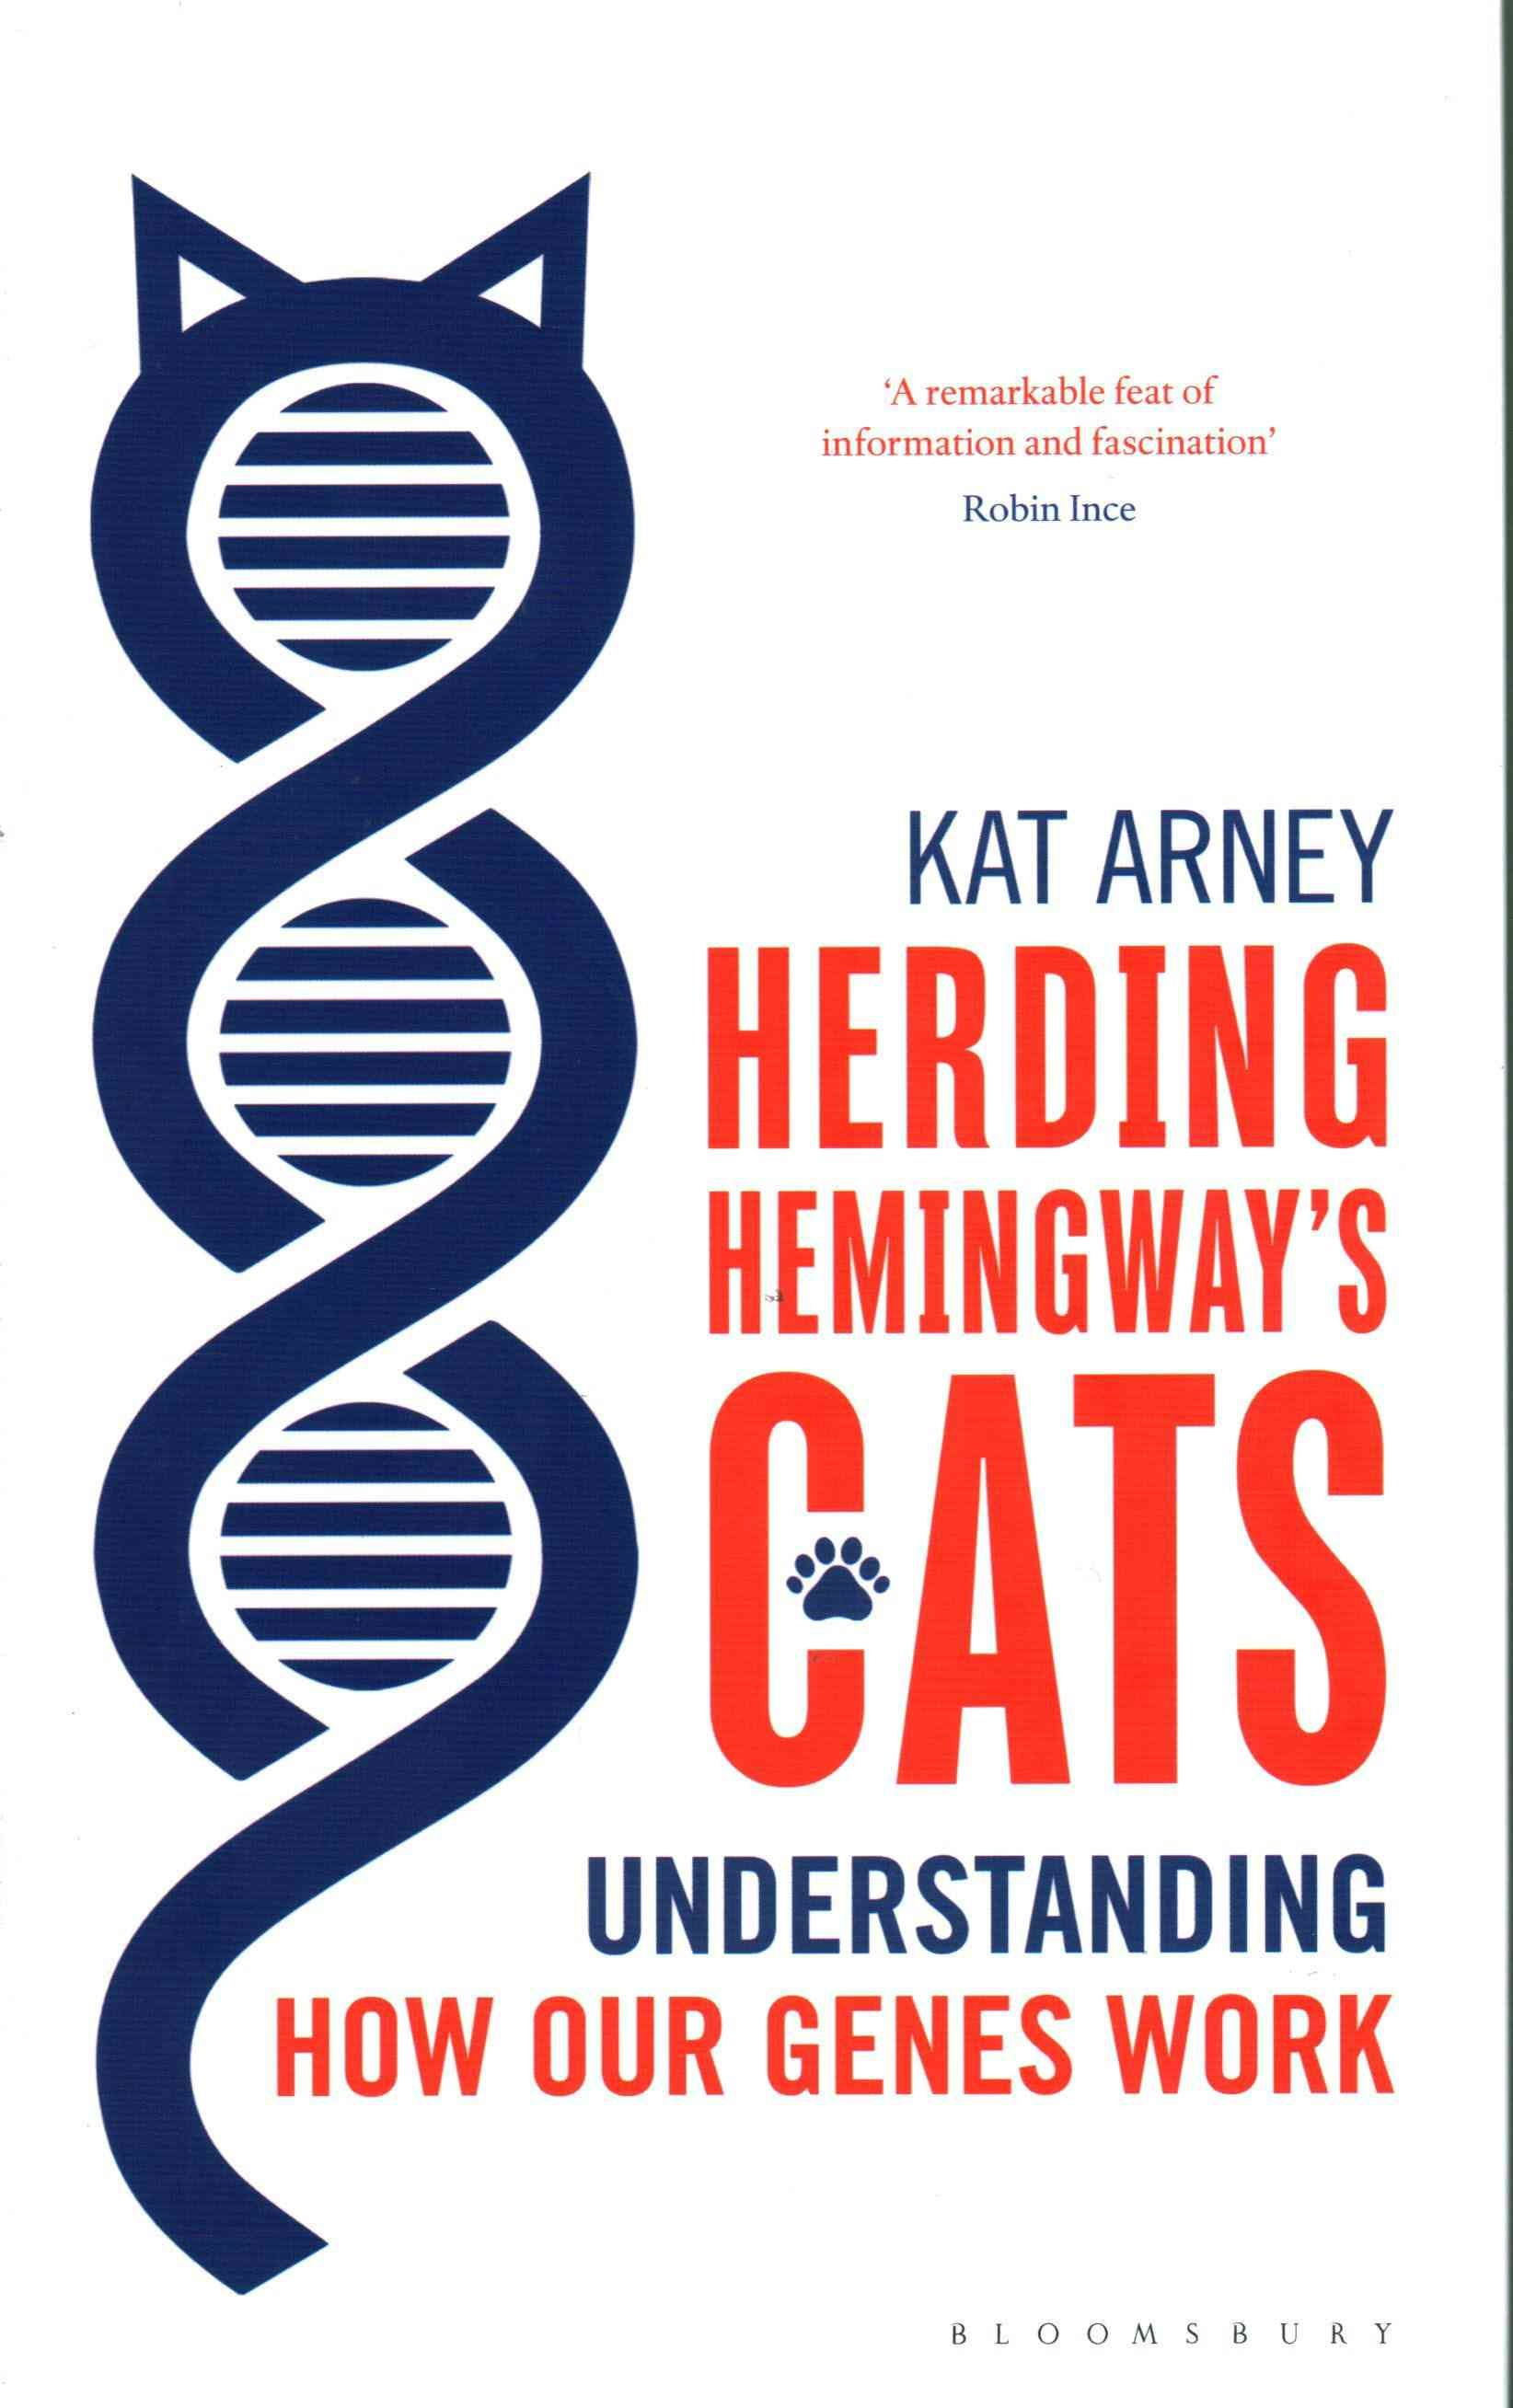 Herding hemingwayus cats understanding how our genes work library